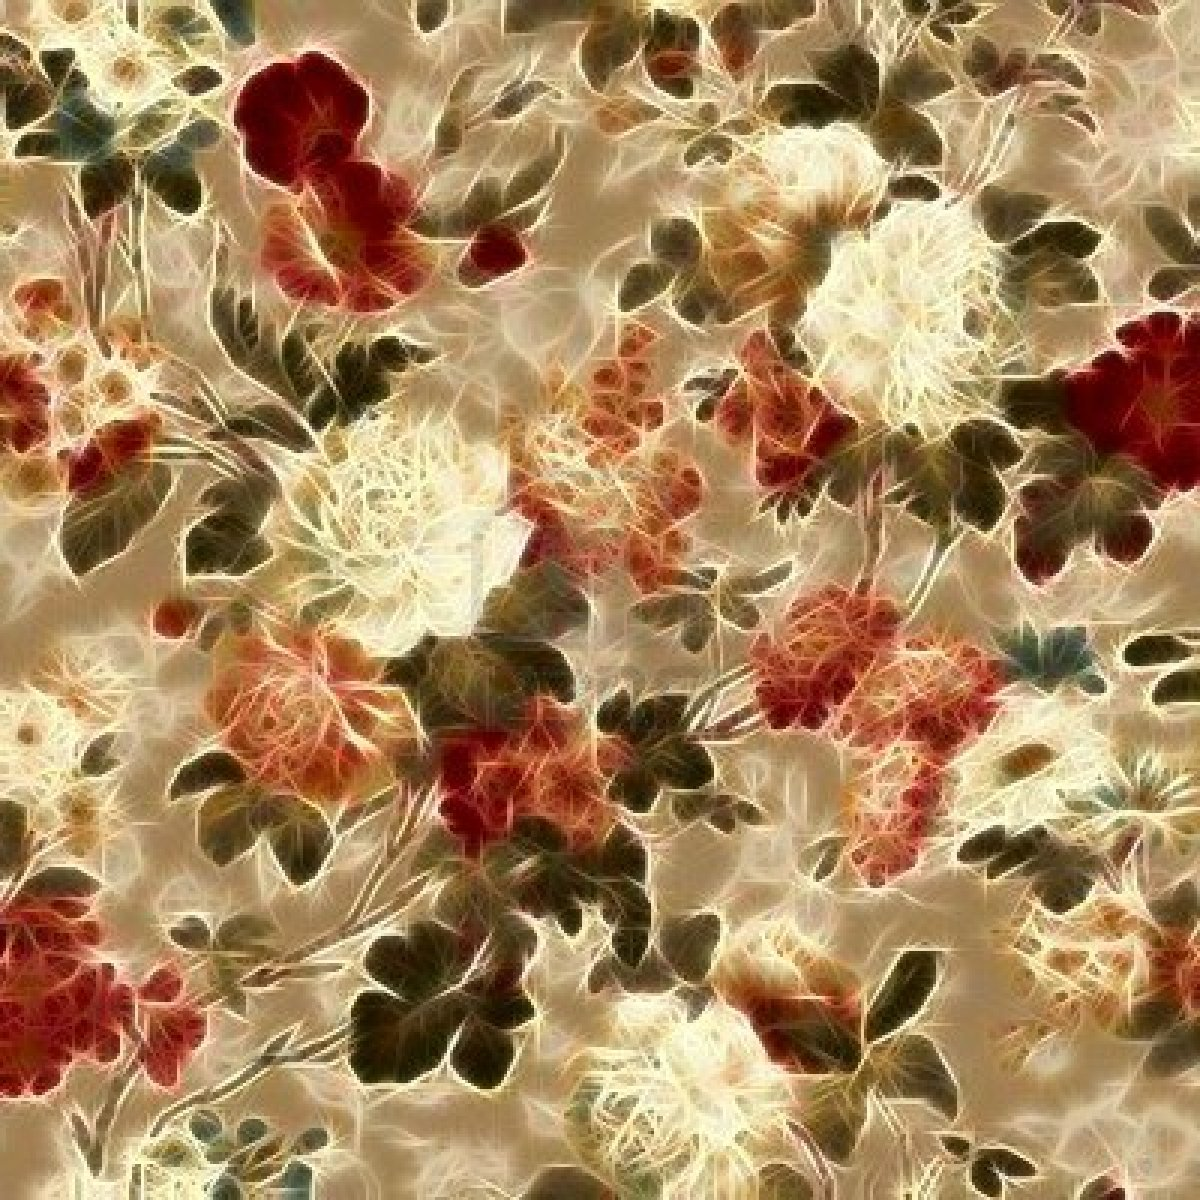 Freebies Vintage Floral Background For Blogs Budakvanilla 39 S